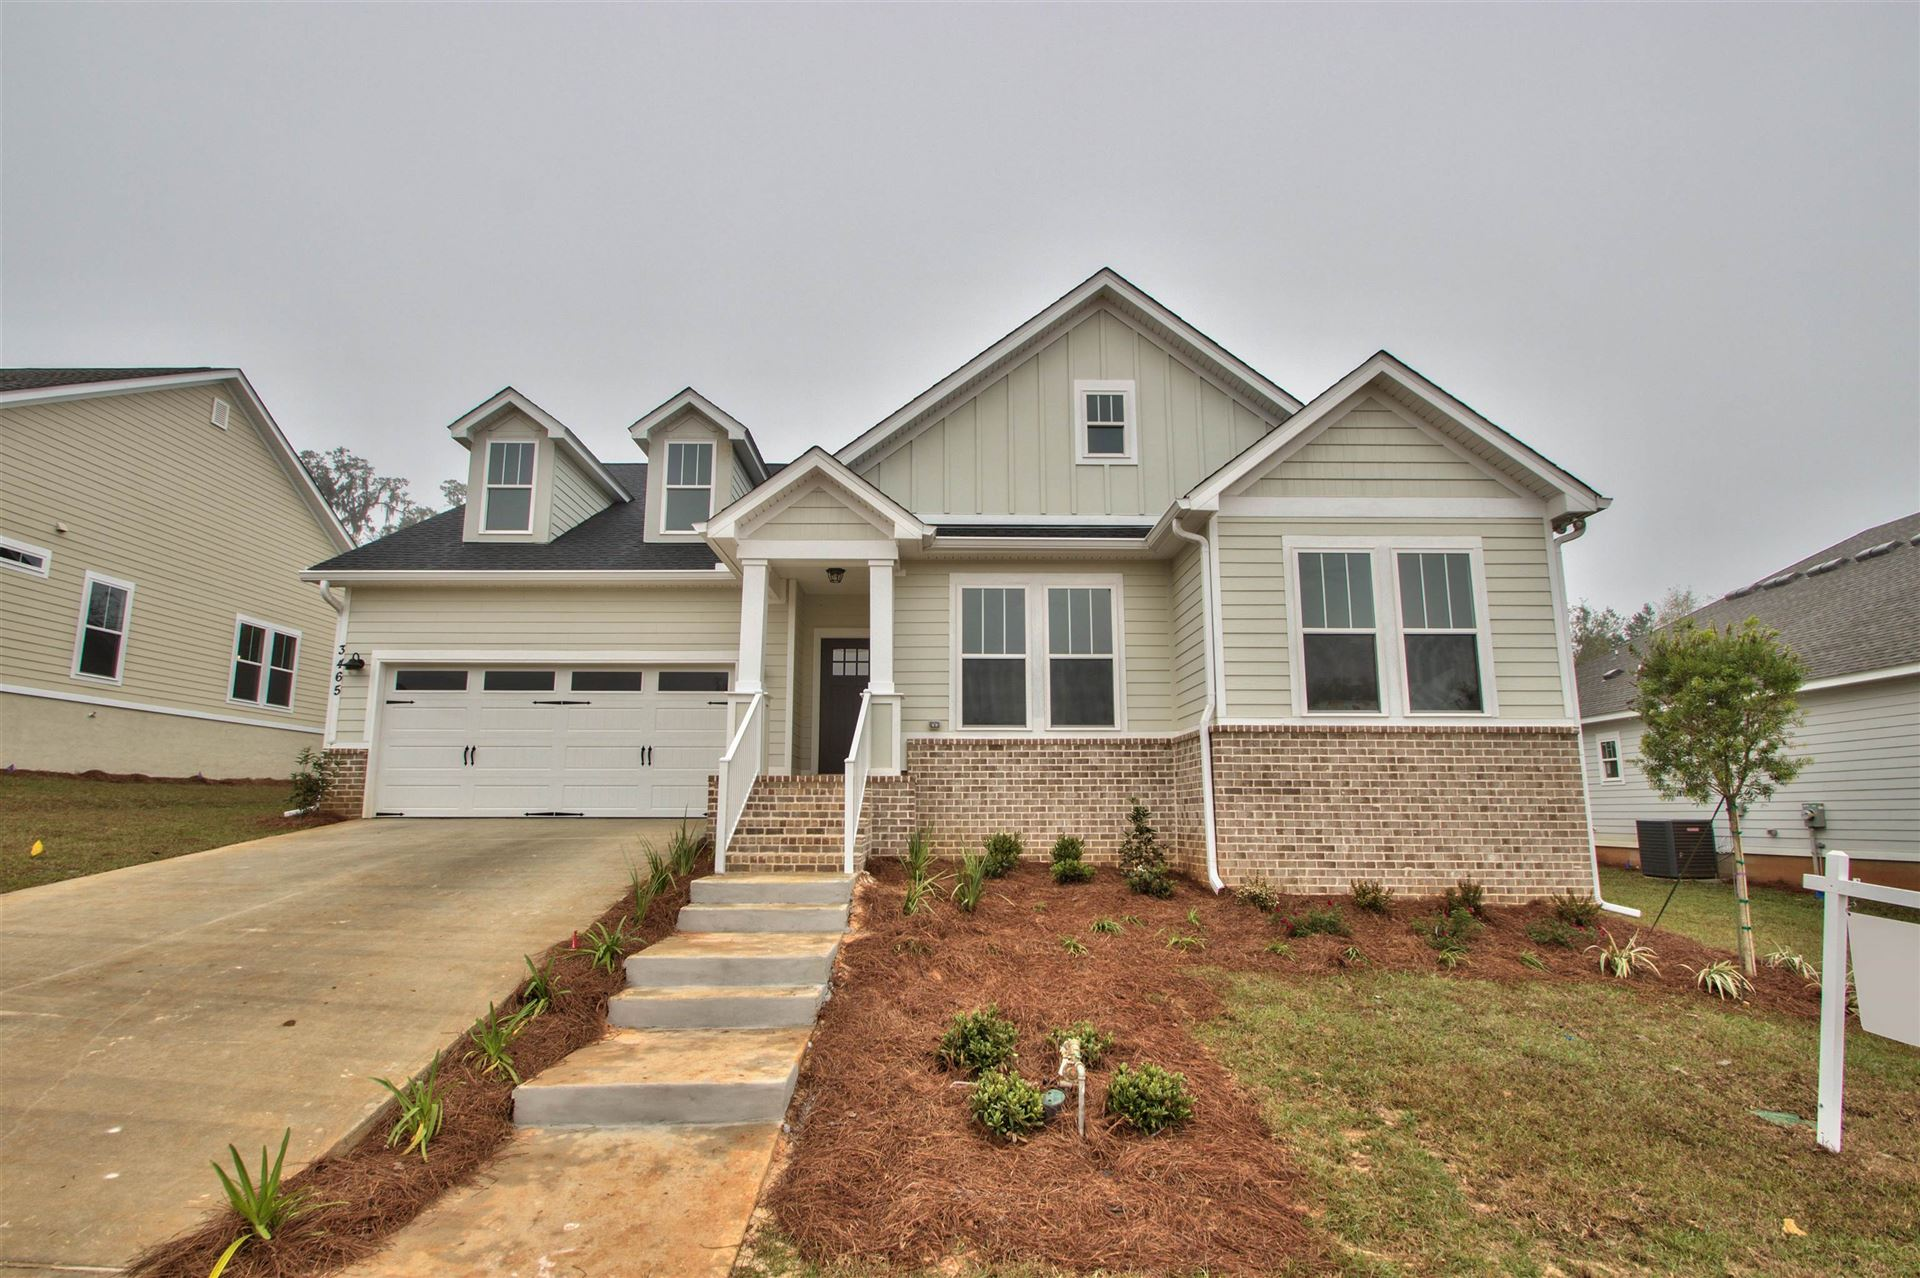 2396 Sweet Valley Heights, Tallahassee, FL 32308 - MLS#: 336483